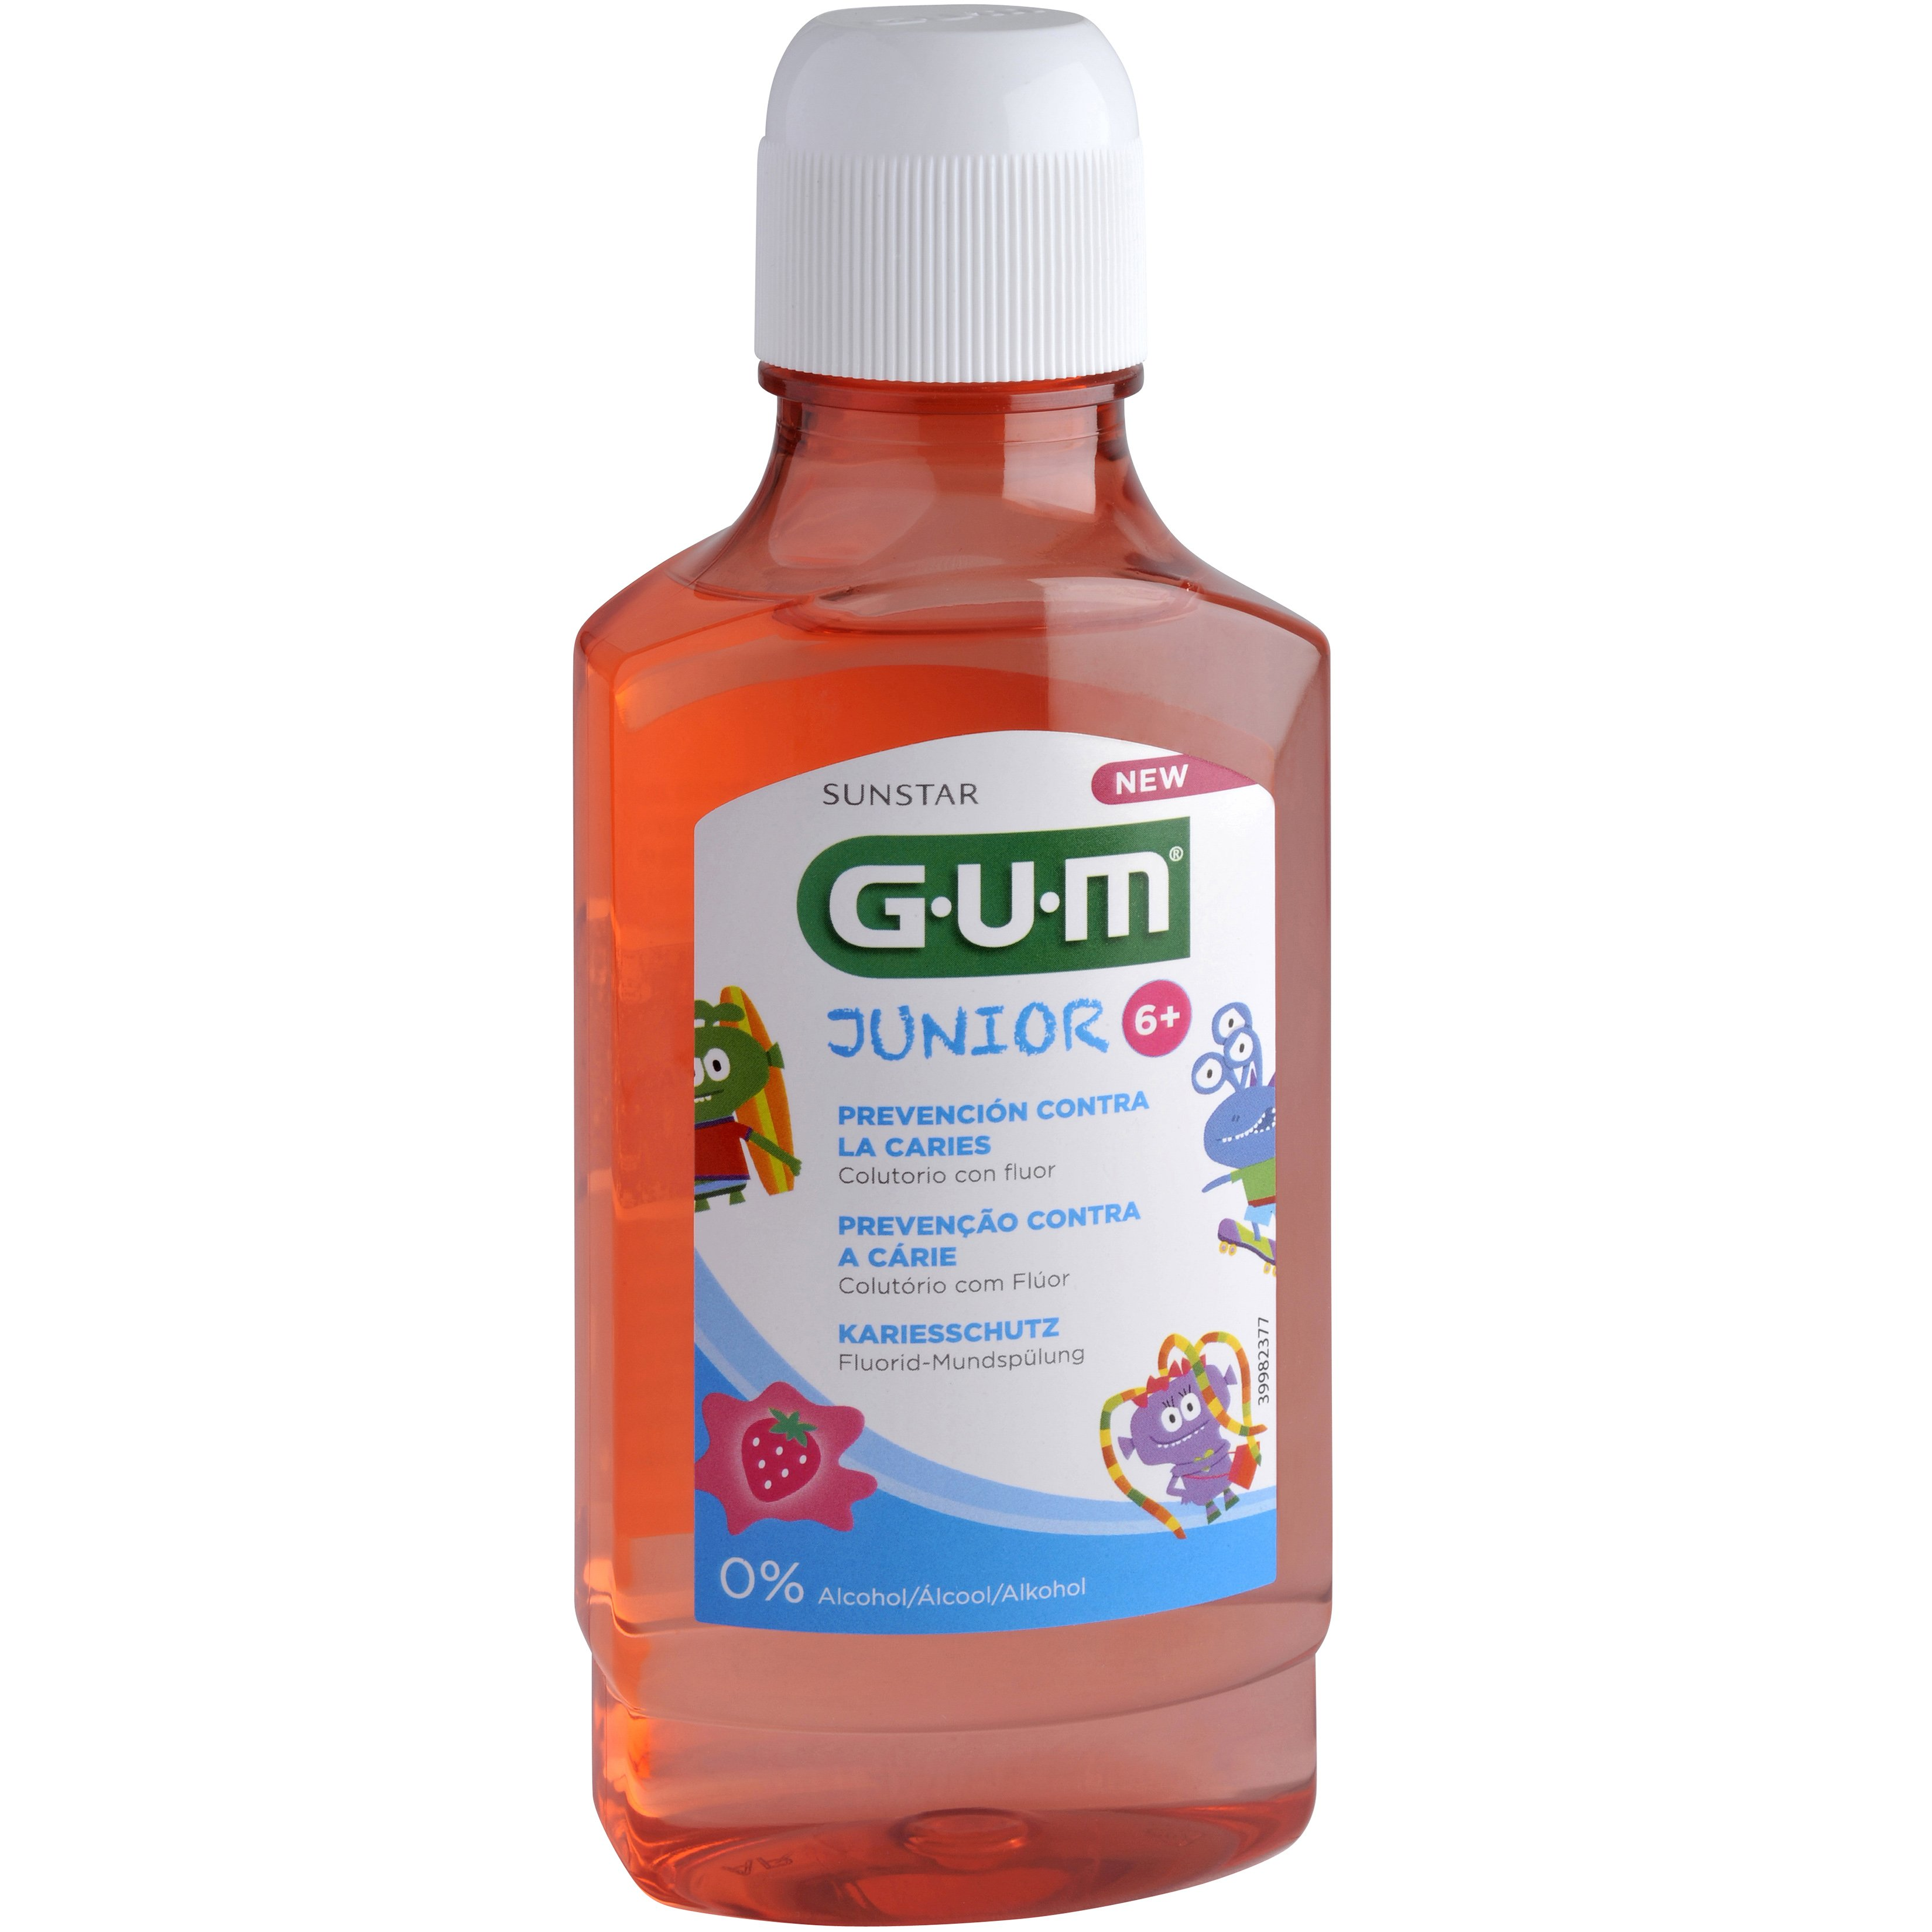 Gum Junior 6+ Cavities Prevention Fluoride Mouthrinse 3022 Παιδικό Στοματικό Διάλυμα Κατά της Τερηδόνας με Γεύση Φράουλα 300ml